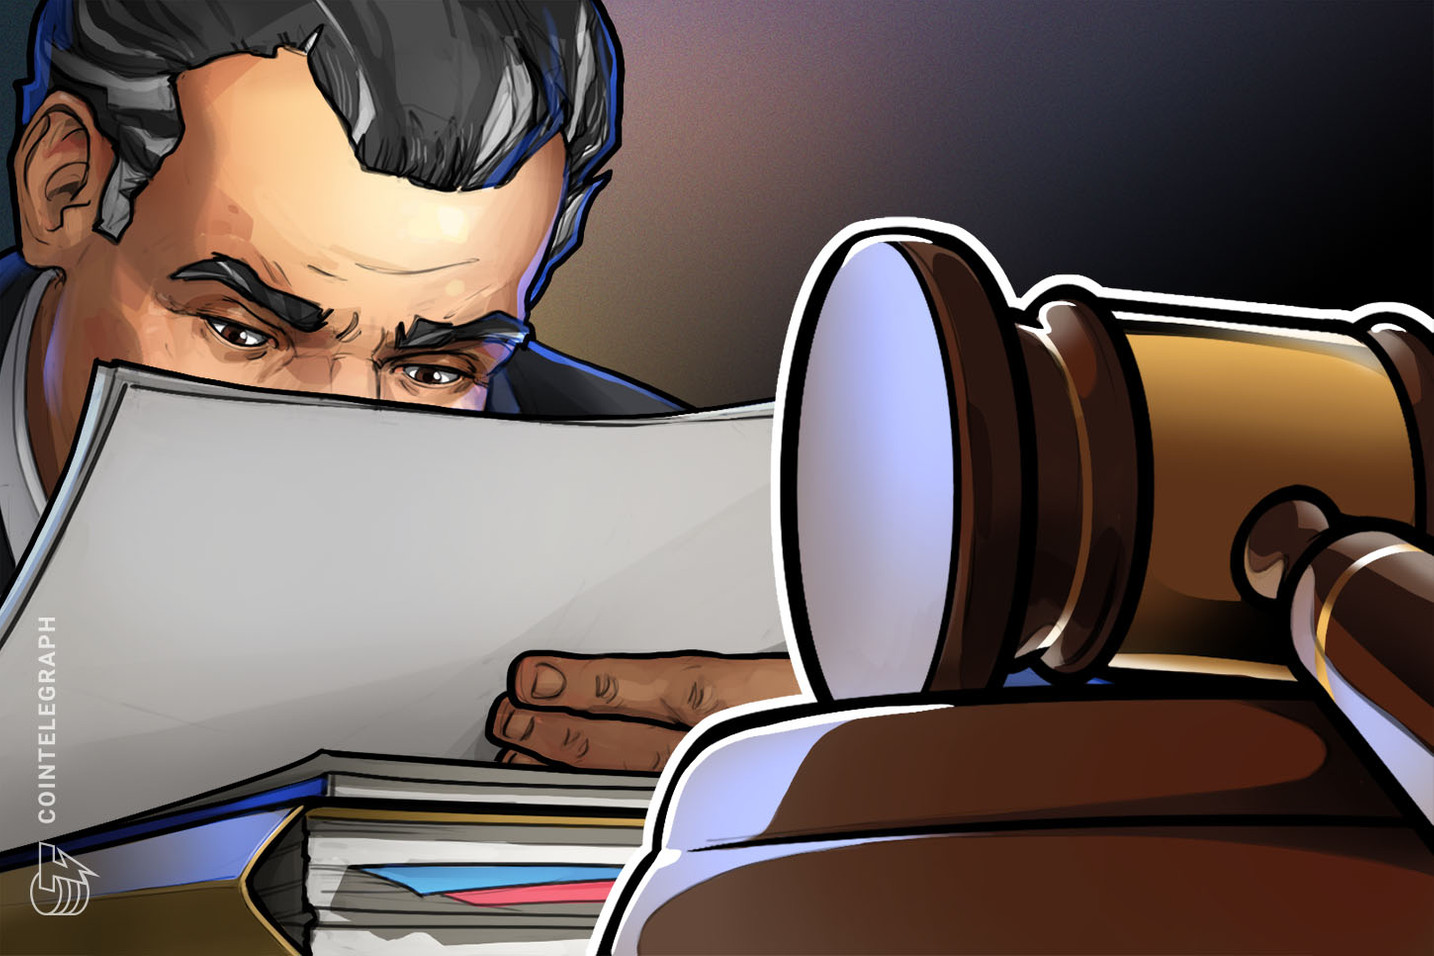 Former Kraken Employee Sues Exchange for 'Unethical and Illegal Business Tactics'